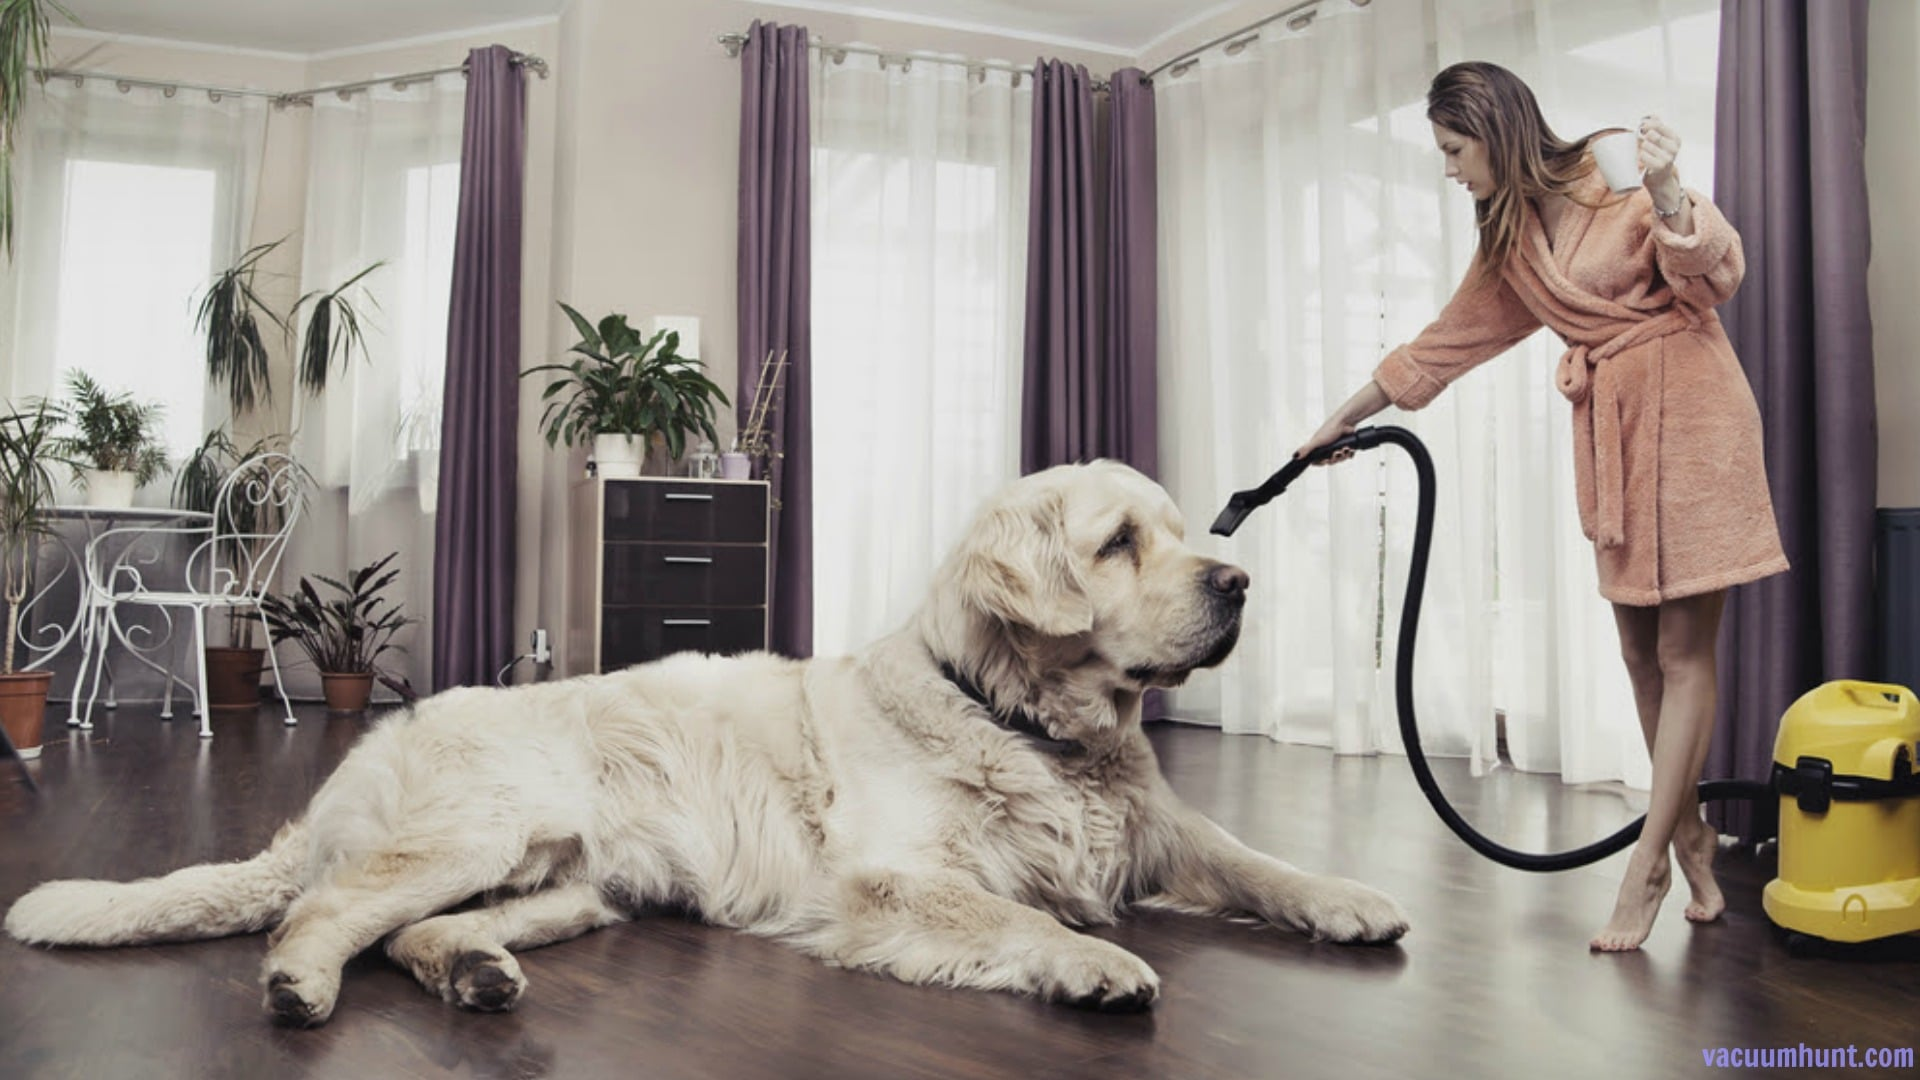 Best Vacuum for Pet Hair Reviews - A Comprehensive Buying Guide